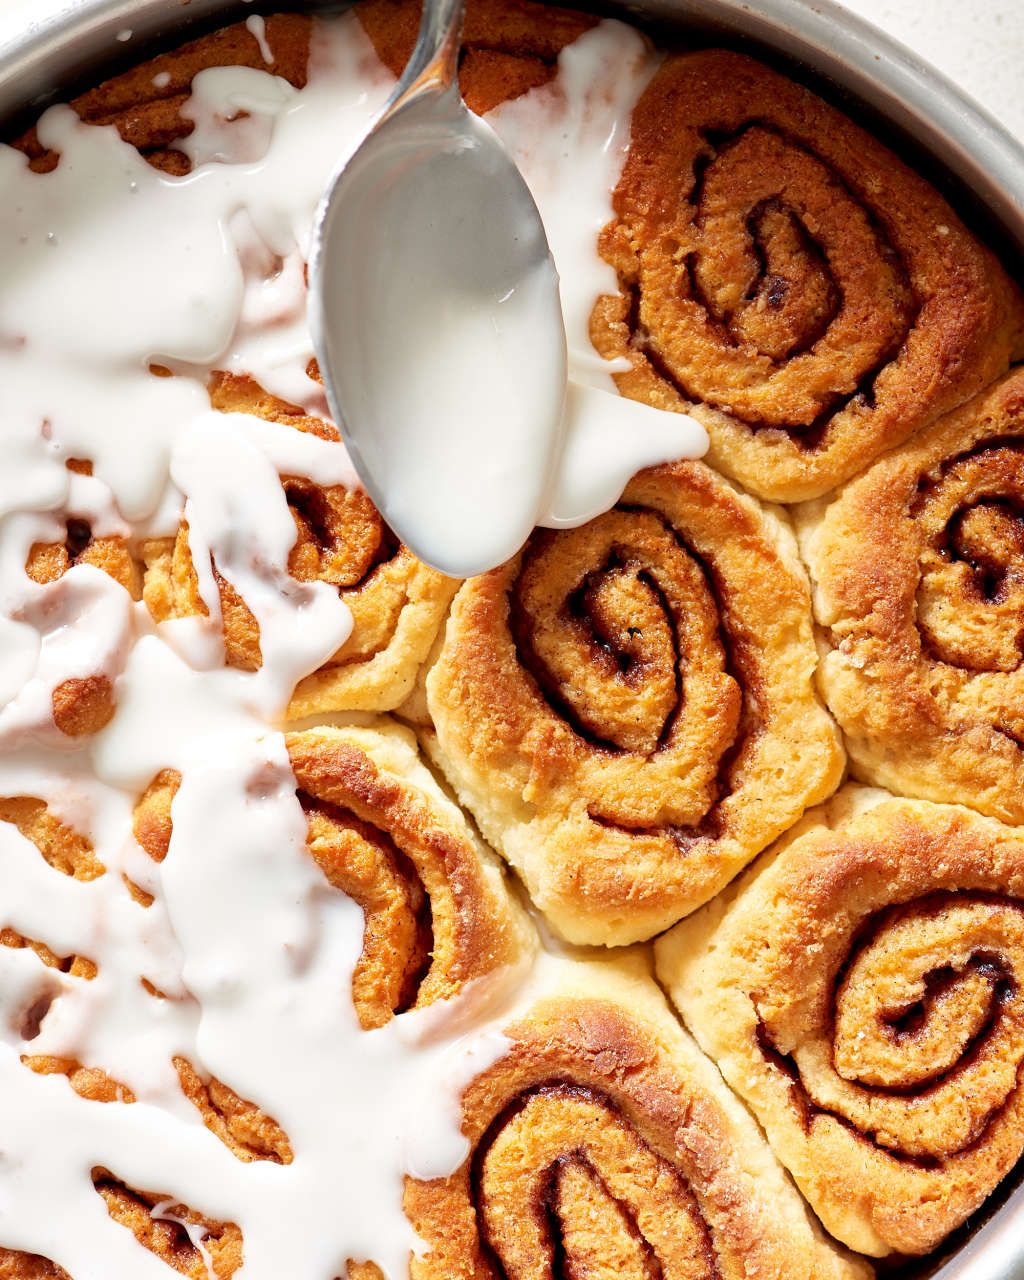 Easy, Gluten-Free Cinnamon Rolls Are Sunday Morning Goals